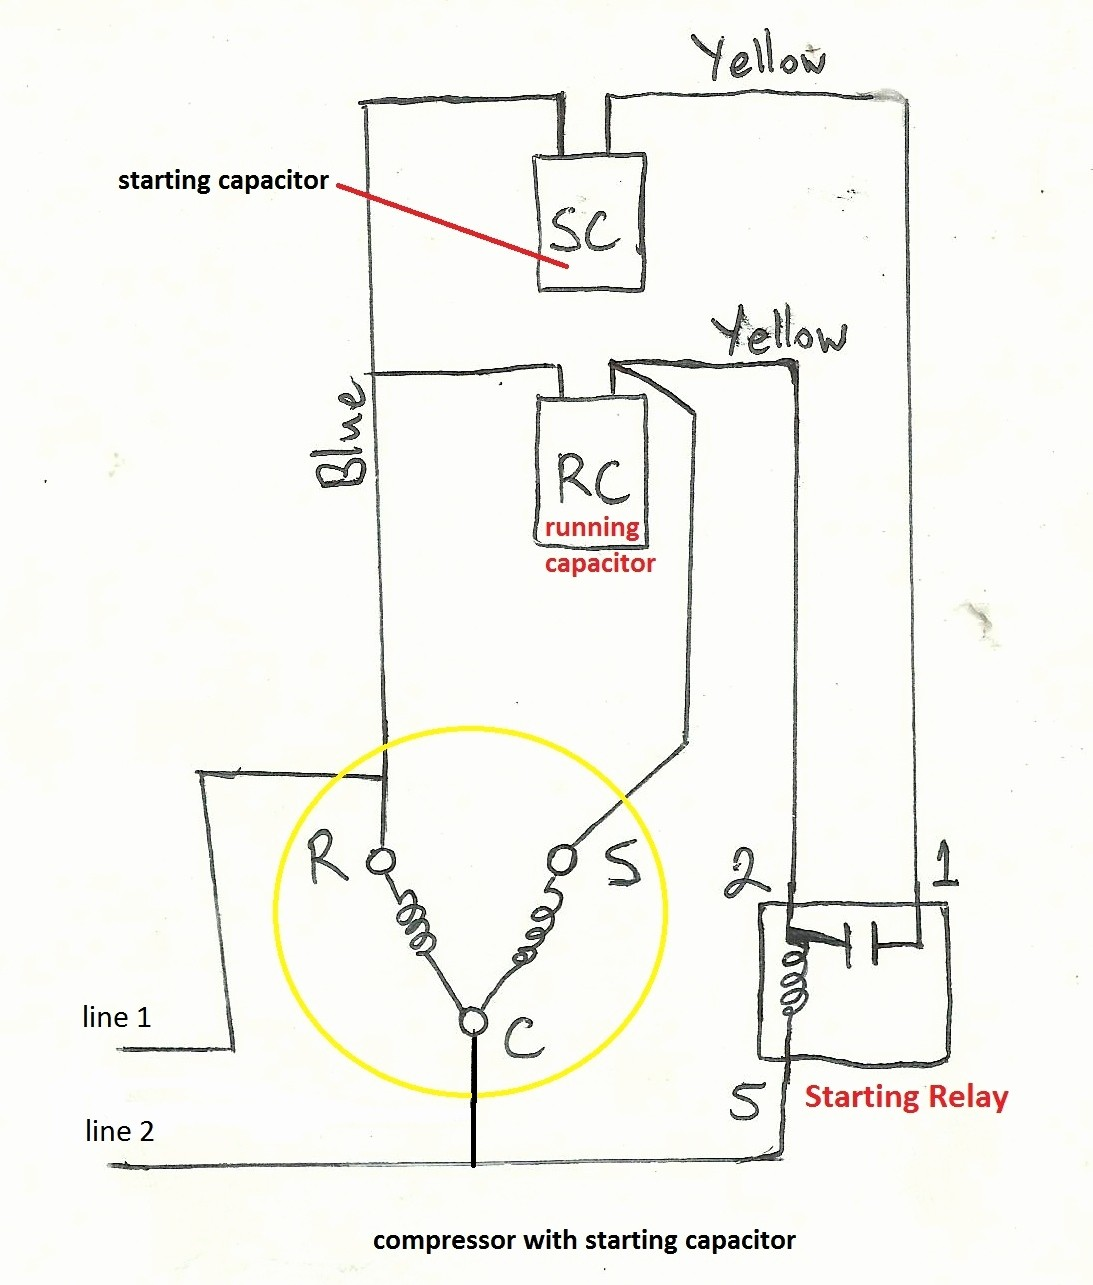 teseh wiring diagram wire center u2022 rh deosireaper co 1969 Ford Mustang  Wiring Diagram Kohler Engine